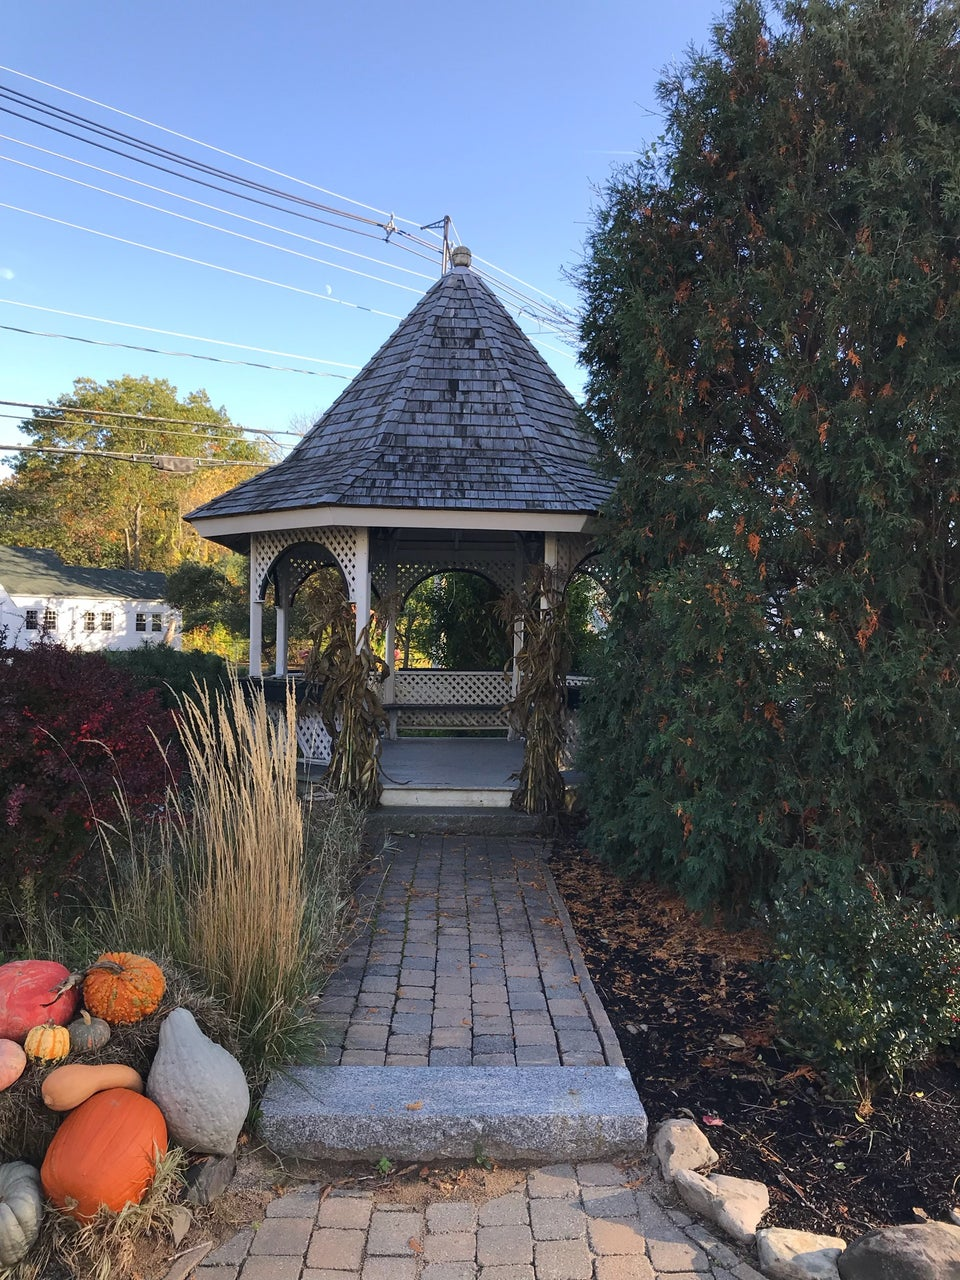 Photo of The Gazebo Inn Ogunquit